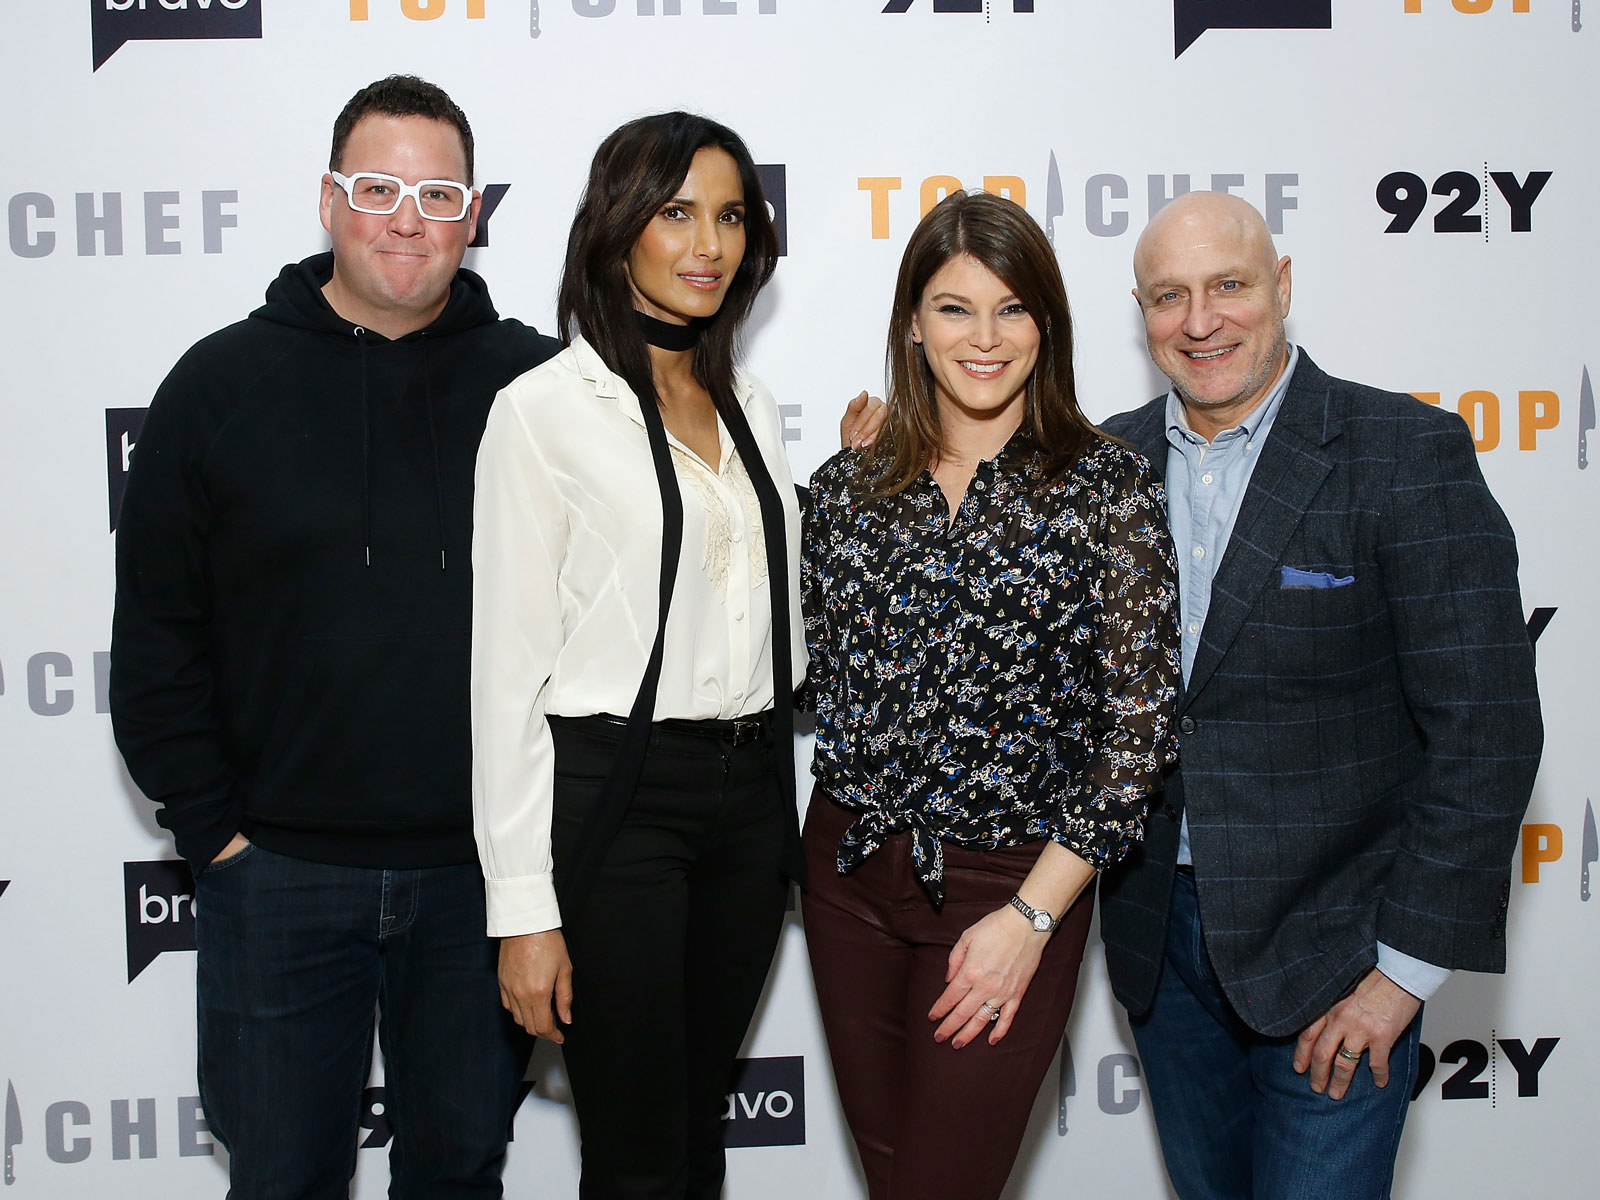 Could the 'Top Chef' Judges Win 'Top Chef?'